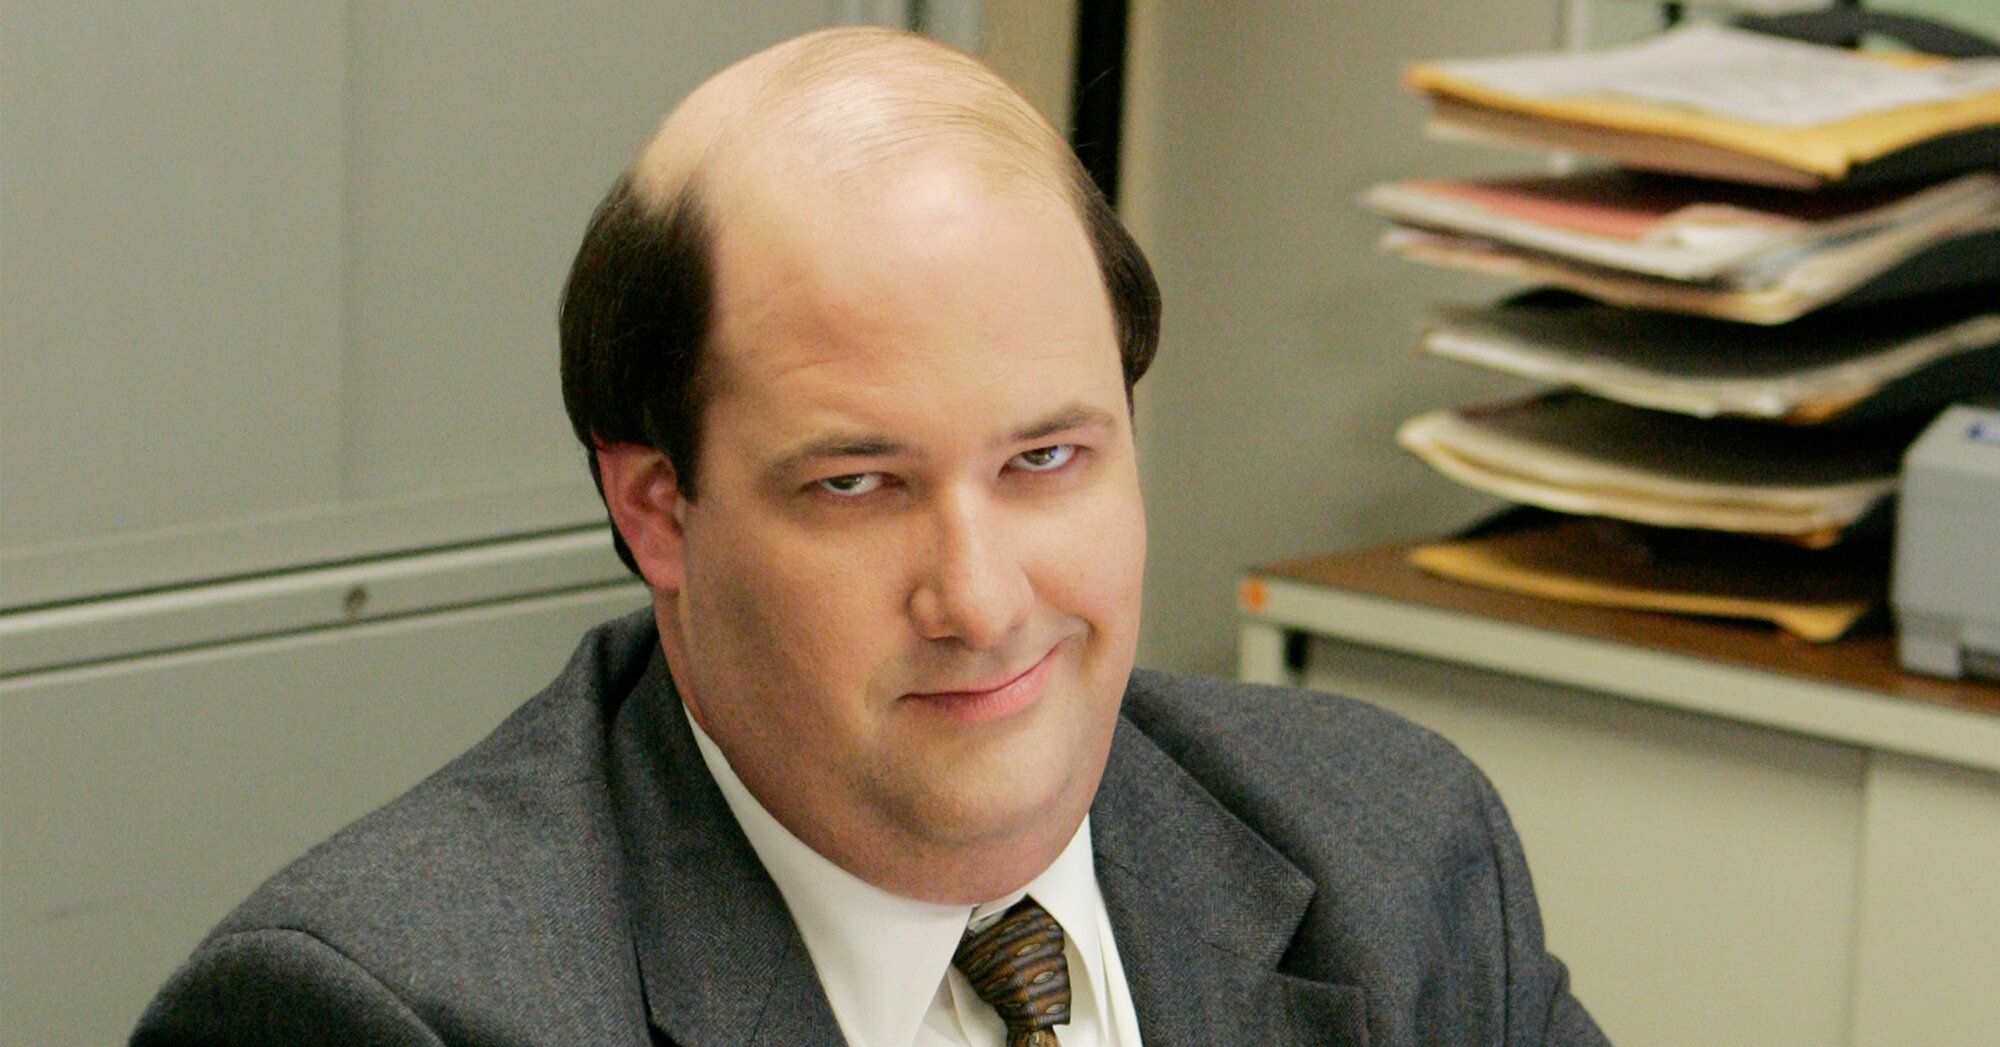 'The Office' oral history podcast is coming with a very special host